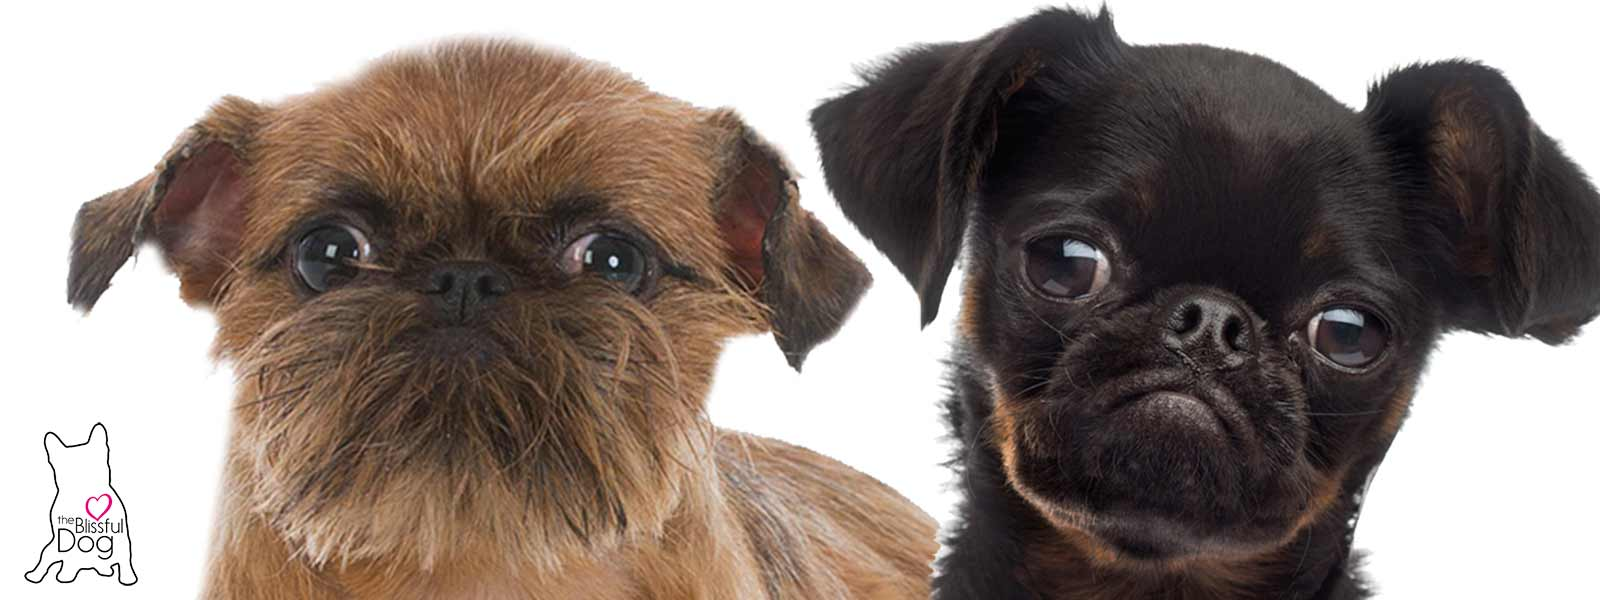 shop the blissful dog brussels griffon collection for your griffon